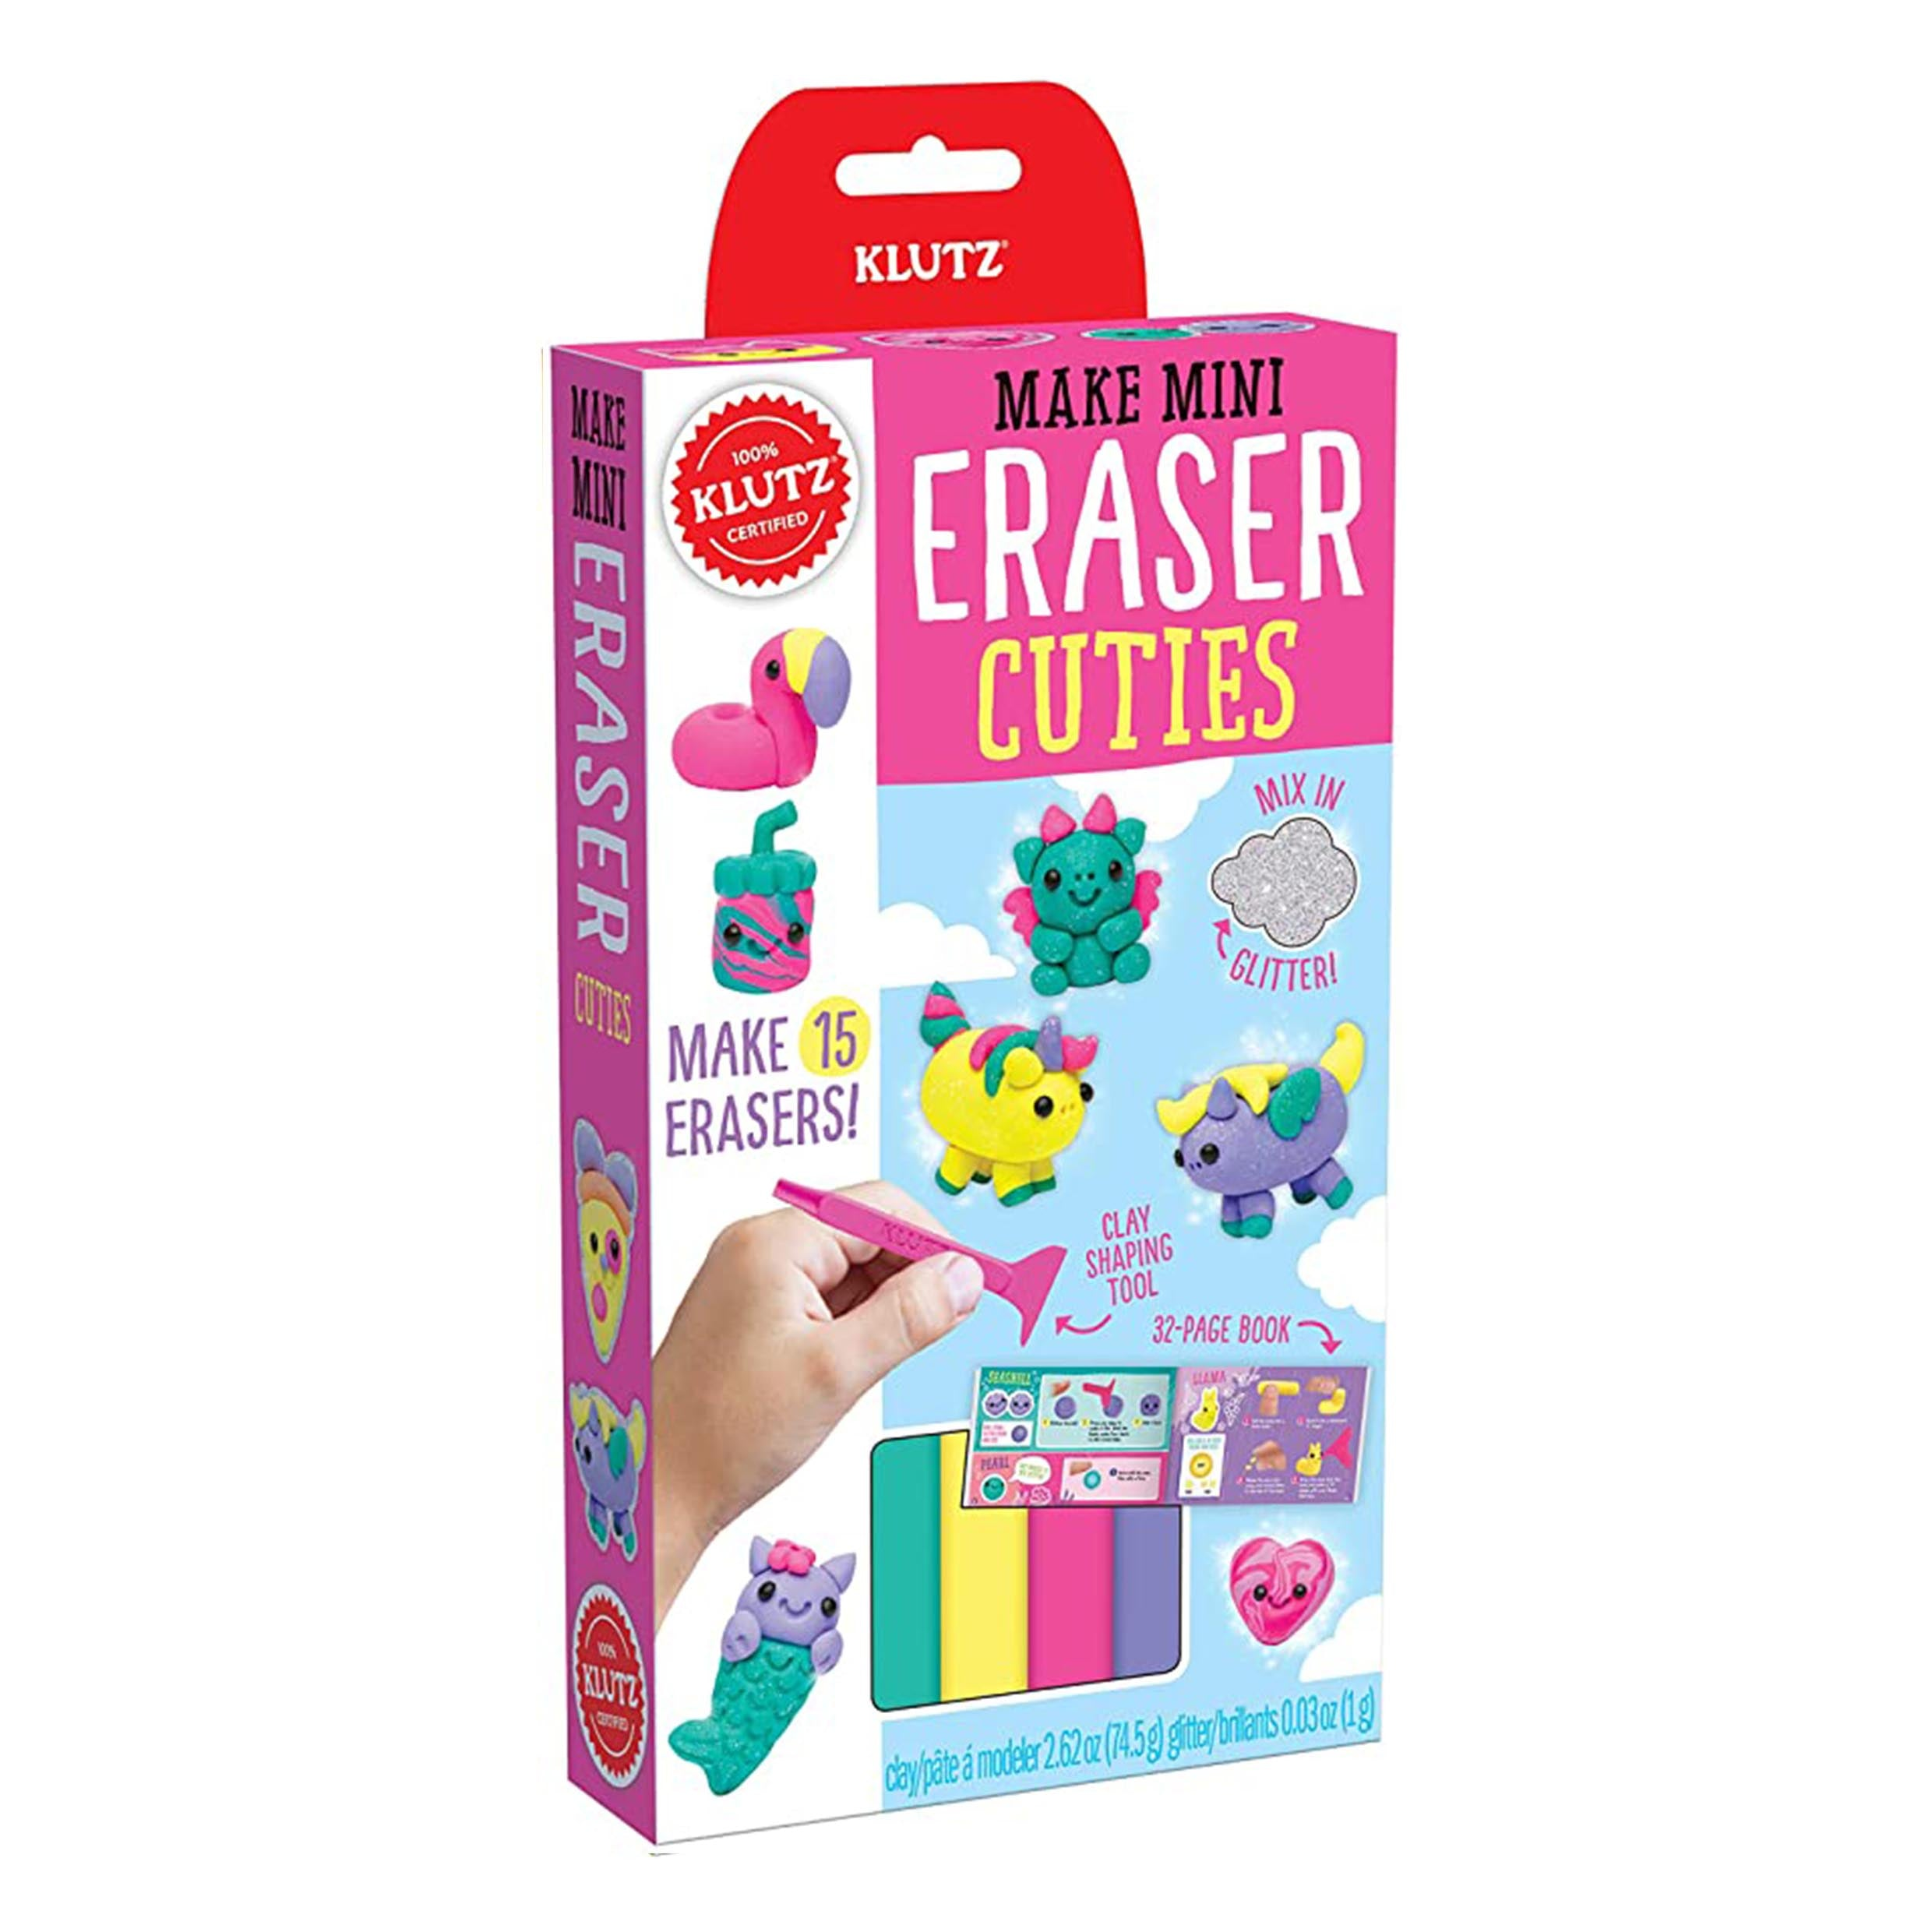 Make Mini Eraser Kits - Cuties by Klutz - K. A. Artist Shop